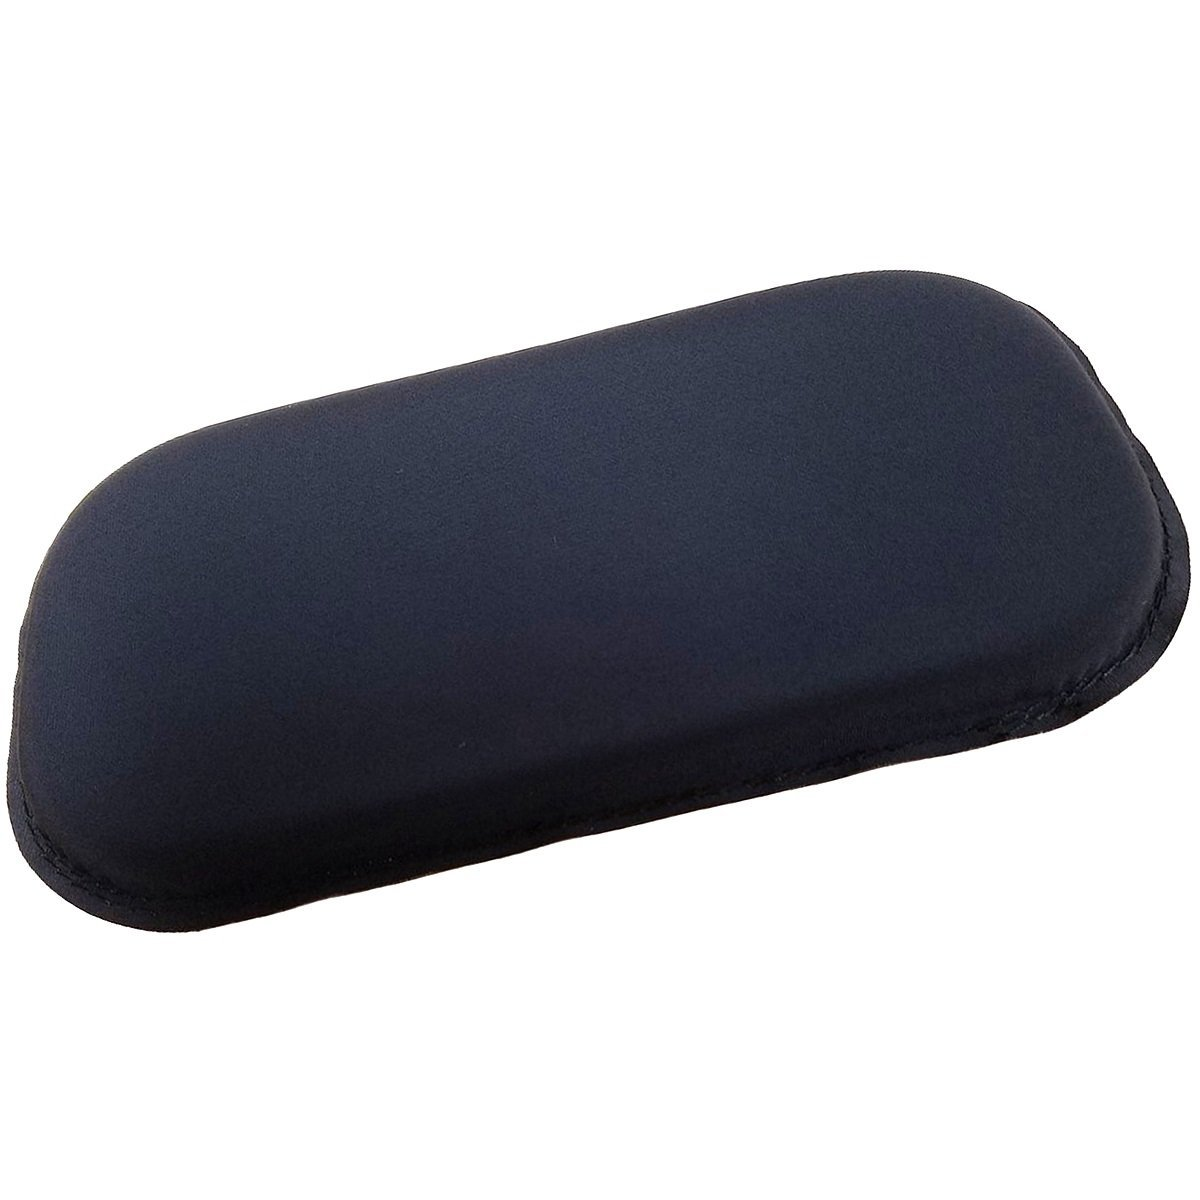 ULTRAGEL ANYWHERE, ANYTIME Arm/Wrist Rest Personal Comfort Gel Pads-SG (Soft Gel)… (4.5x8.5, Black/Non-Slip)